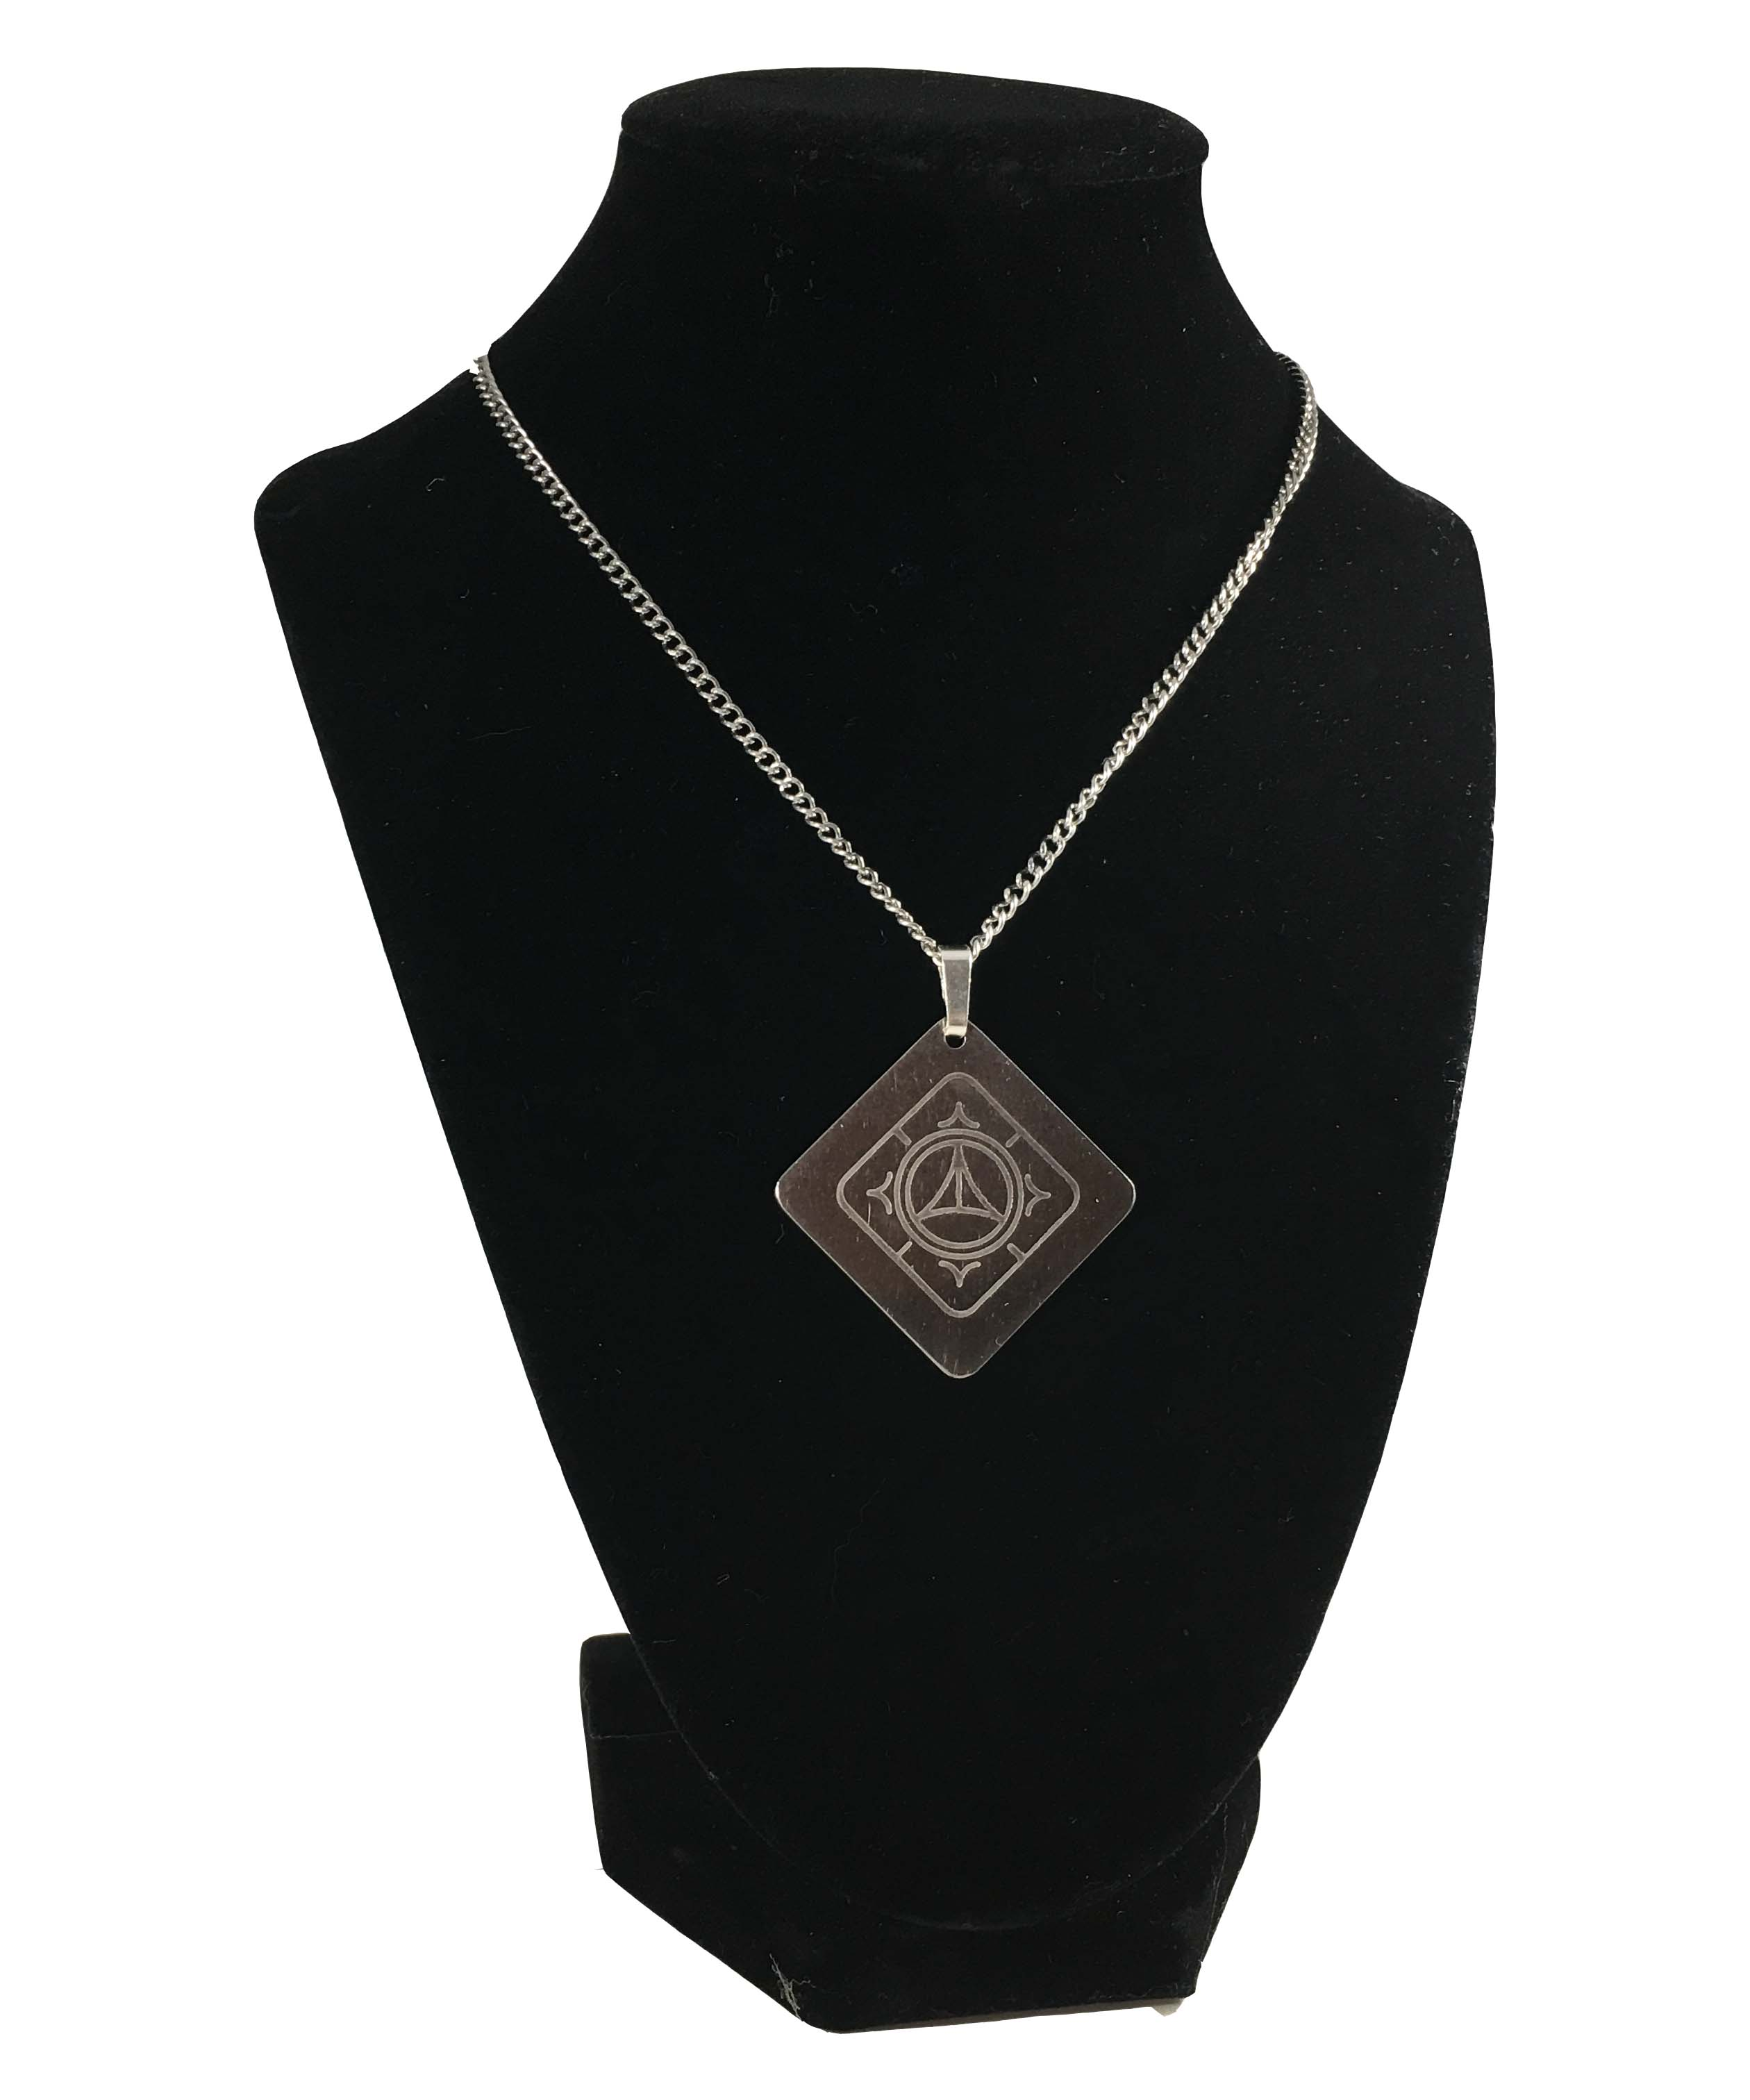 health is an royal plain egyptian pendants aeravida silver and details products eye pendant power of circle protection the design this symbol good horus center sterling pp ancient